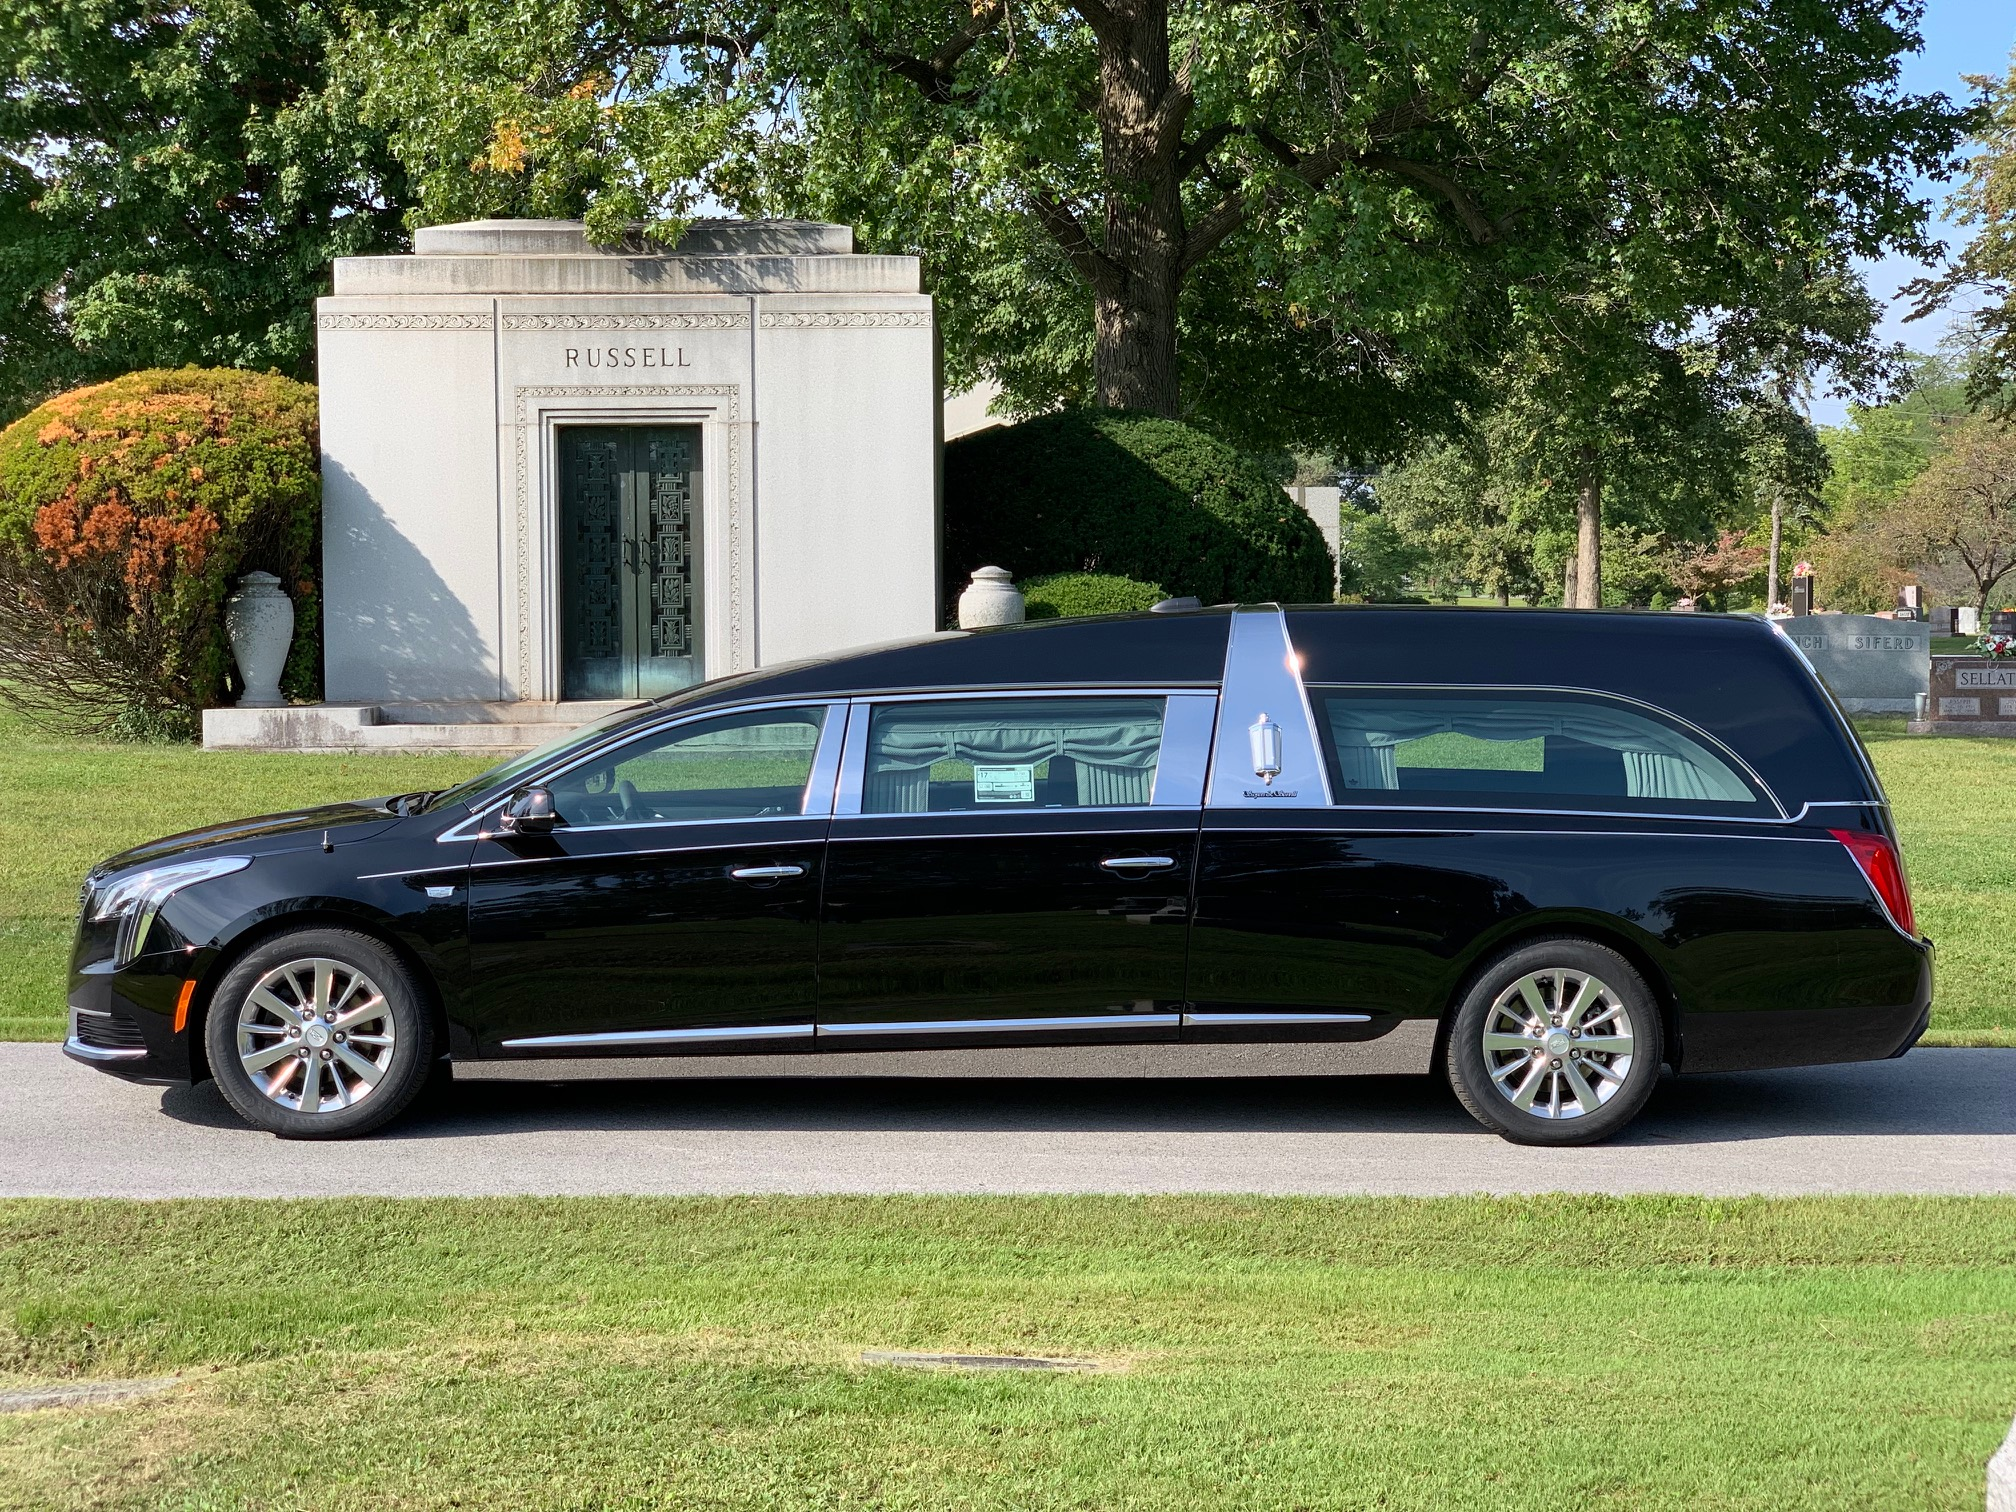 2019 Cadillac S&S Park Hill Funeral Coach